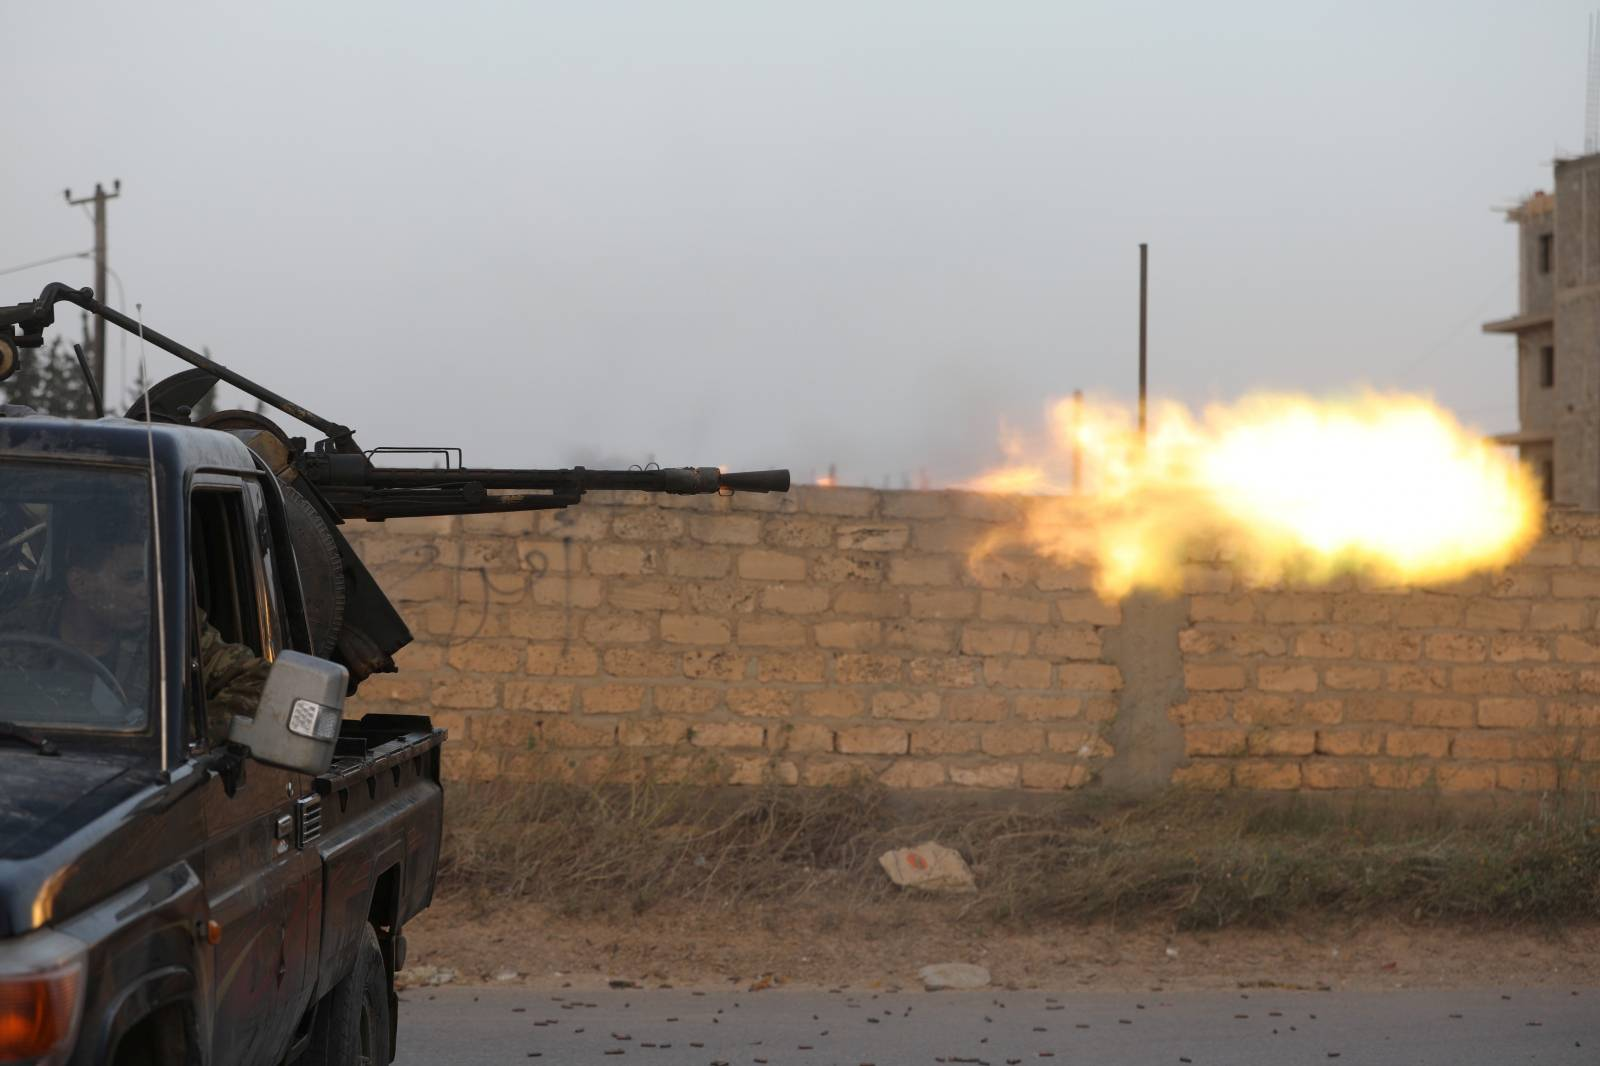 Members of the Libyan internationally recognised government forces fire during fighting with Eastern forces in Ain Zara